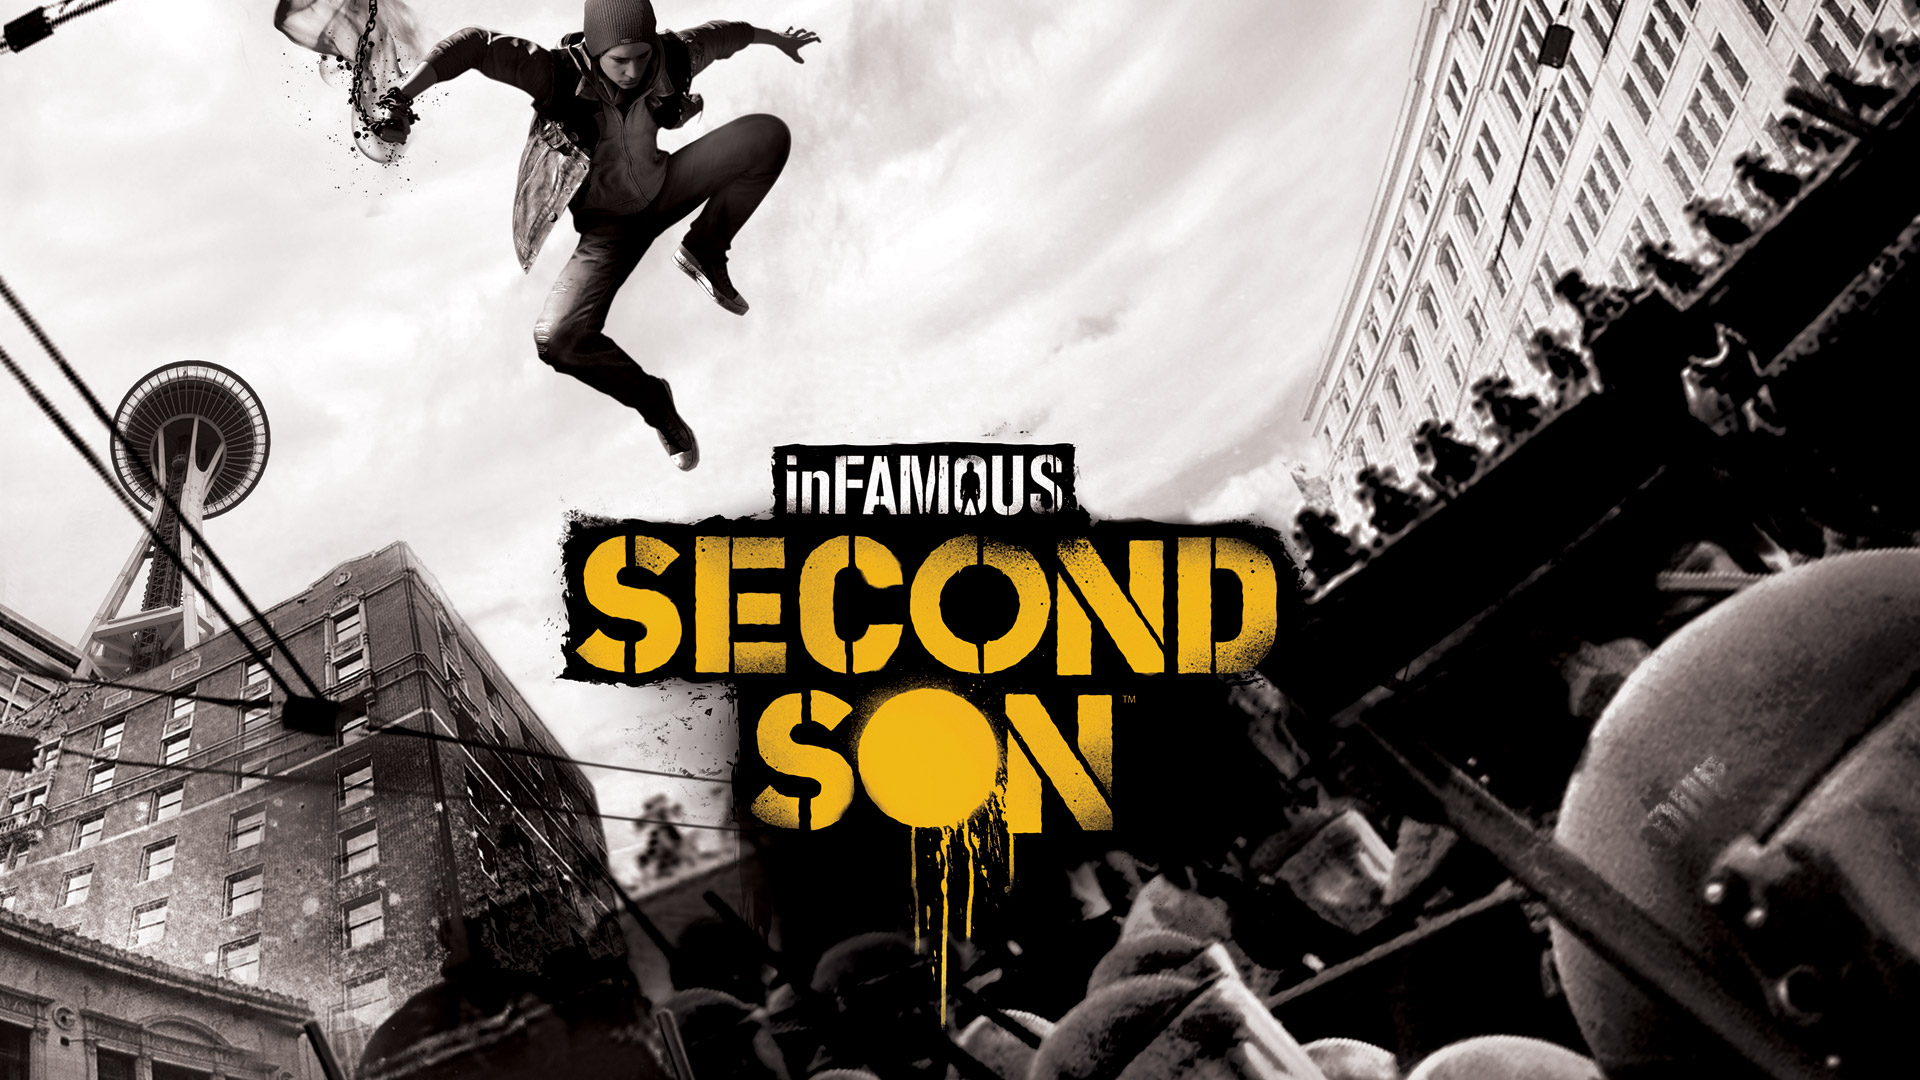 Infamous Second Son wallpaper 7